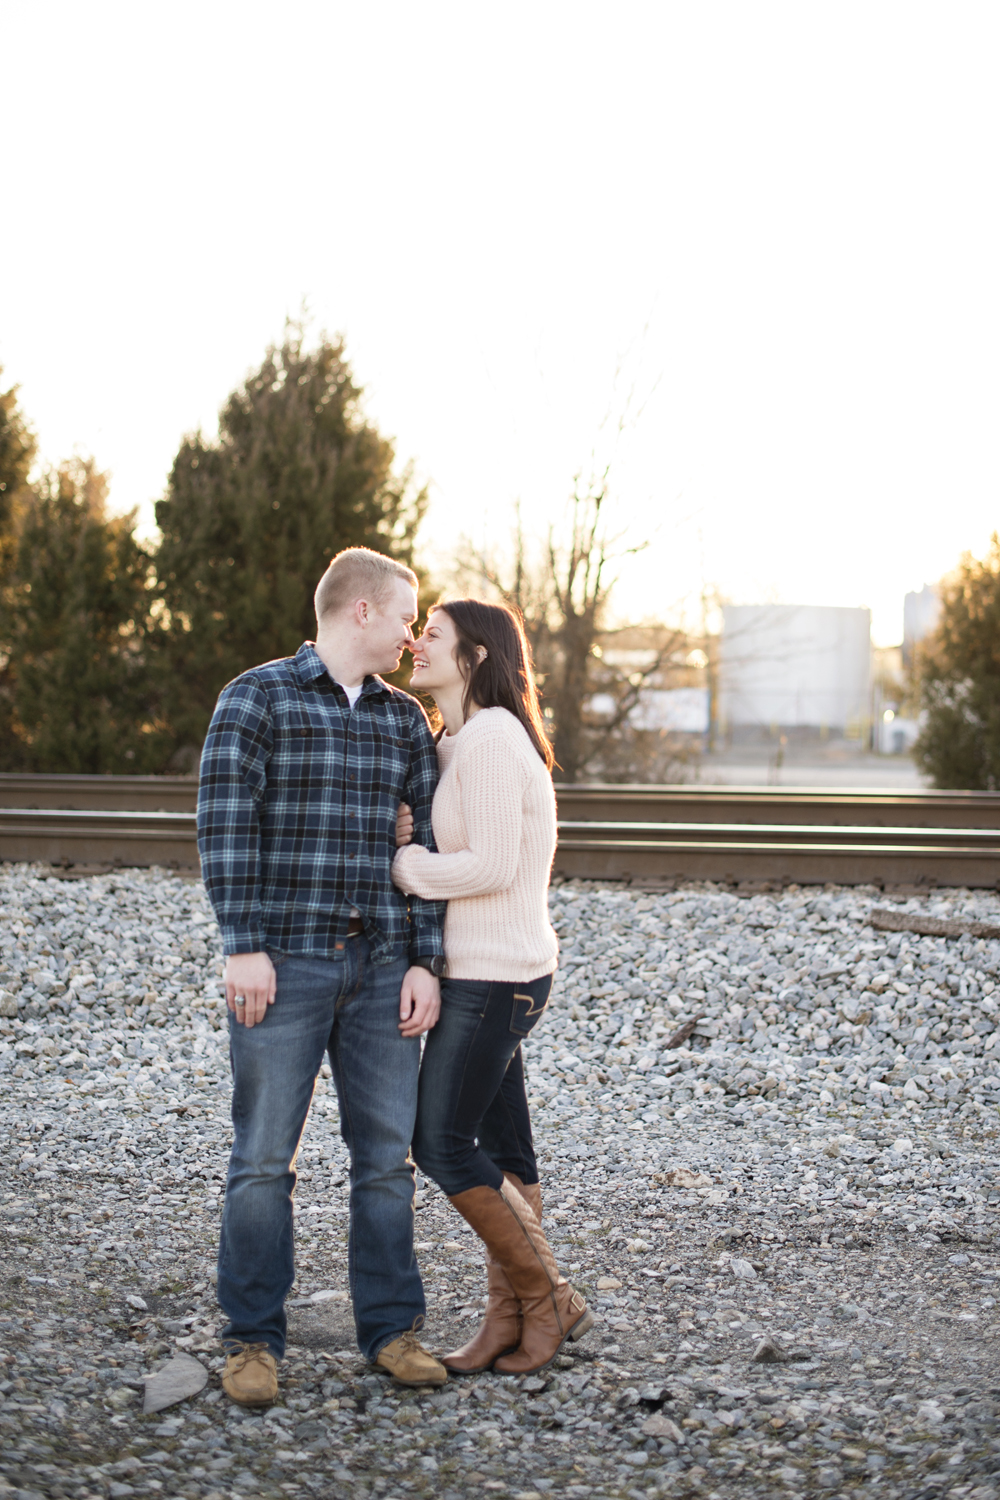 Sunset engagement pictures by train tracks during golden hour